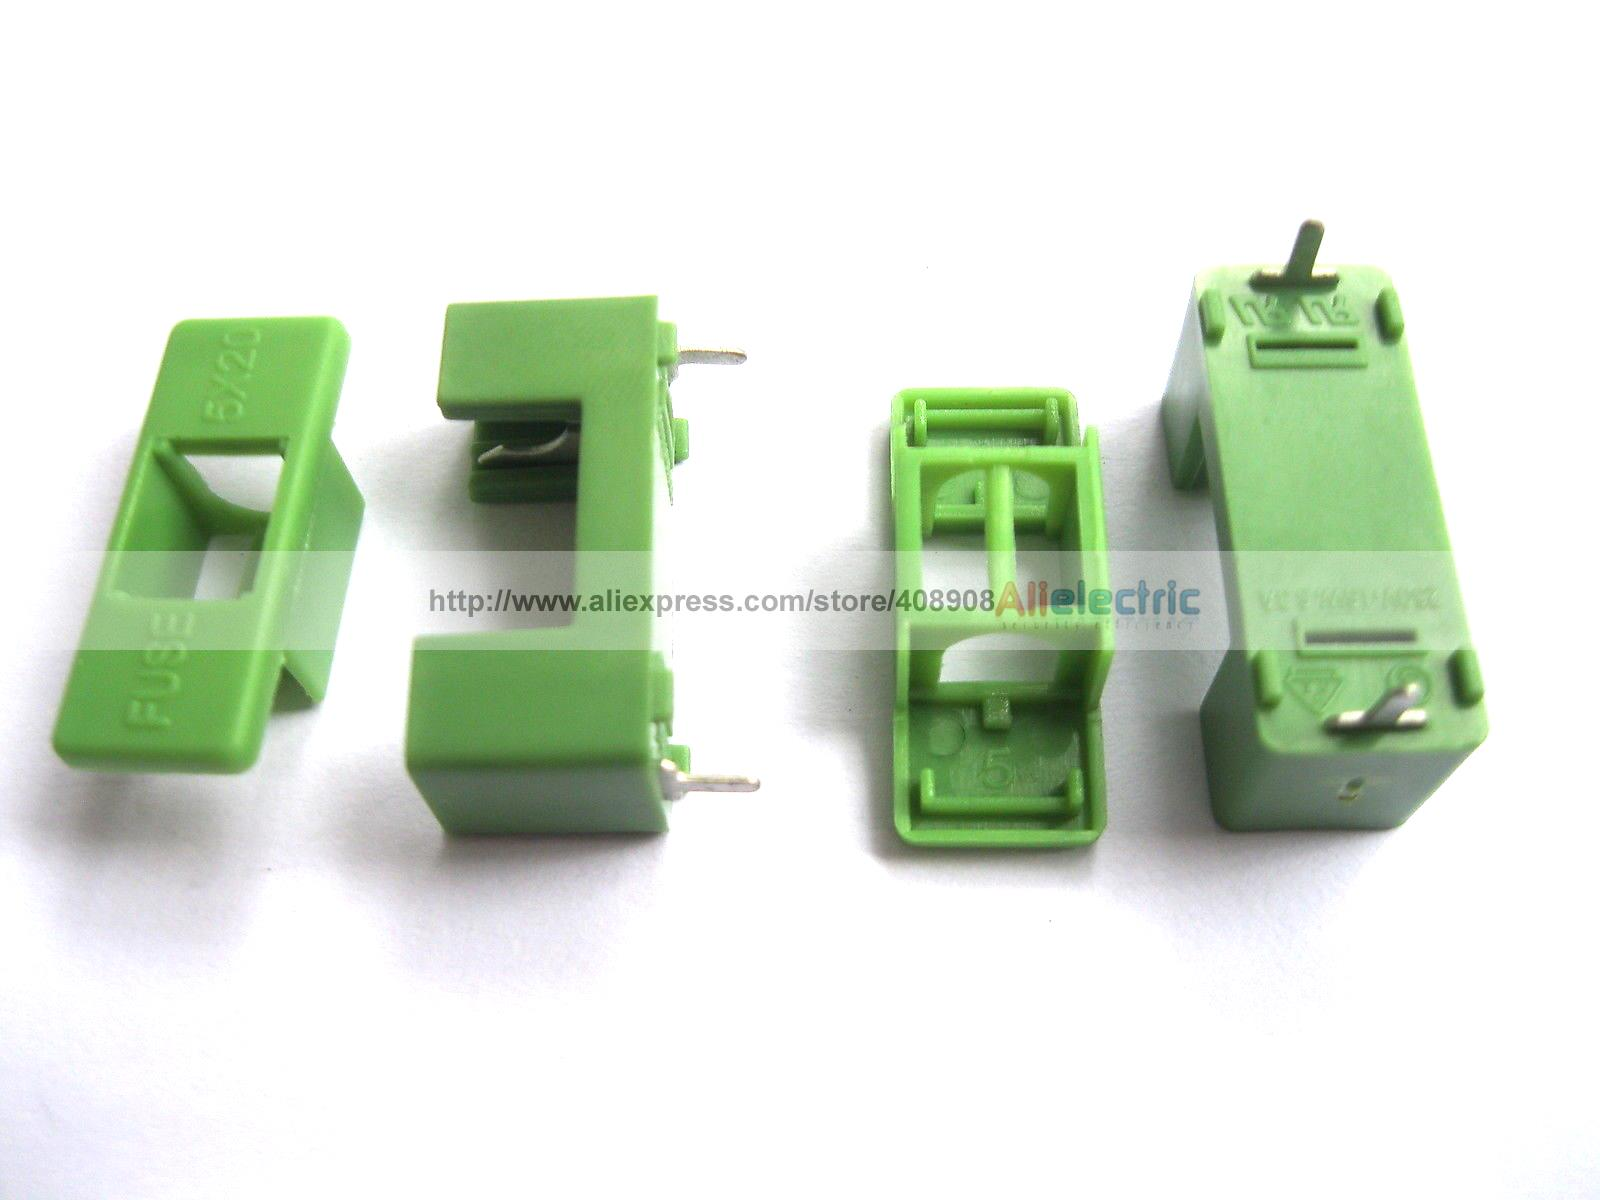 100 Pcs PTF 7 DIP Fuse Holder 6 3A 250V Used for 5x20 Green Color lnk363pn dip 7